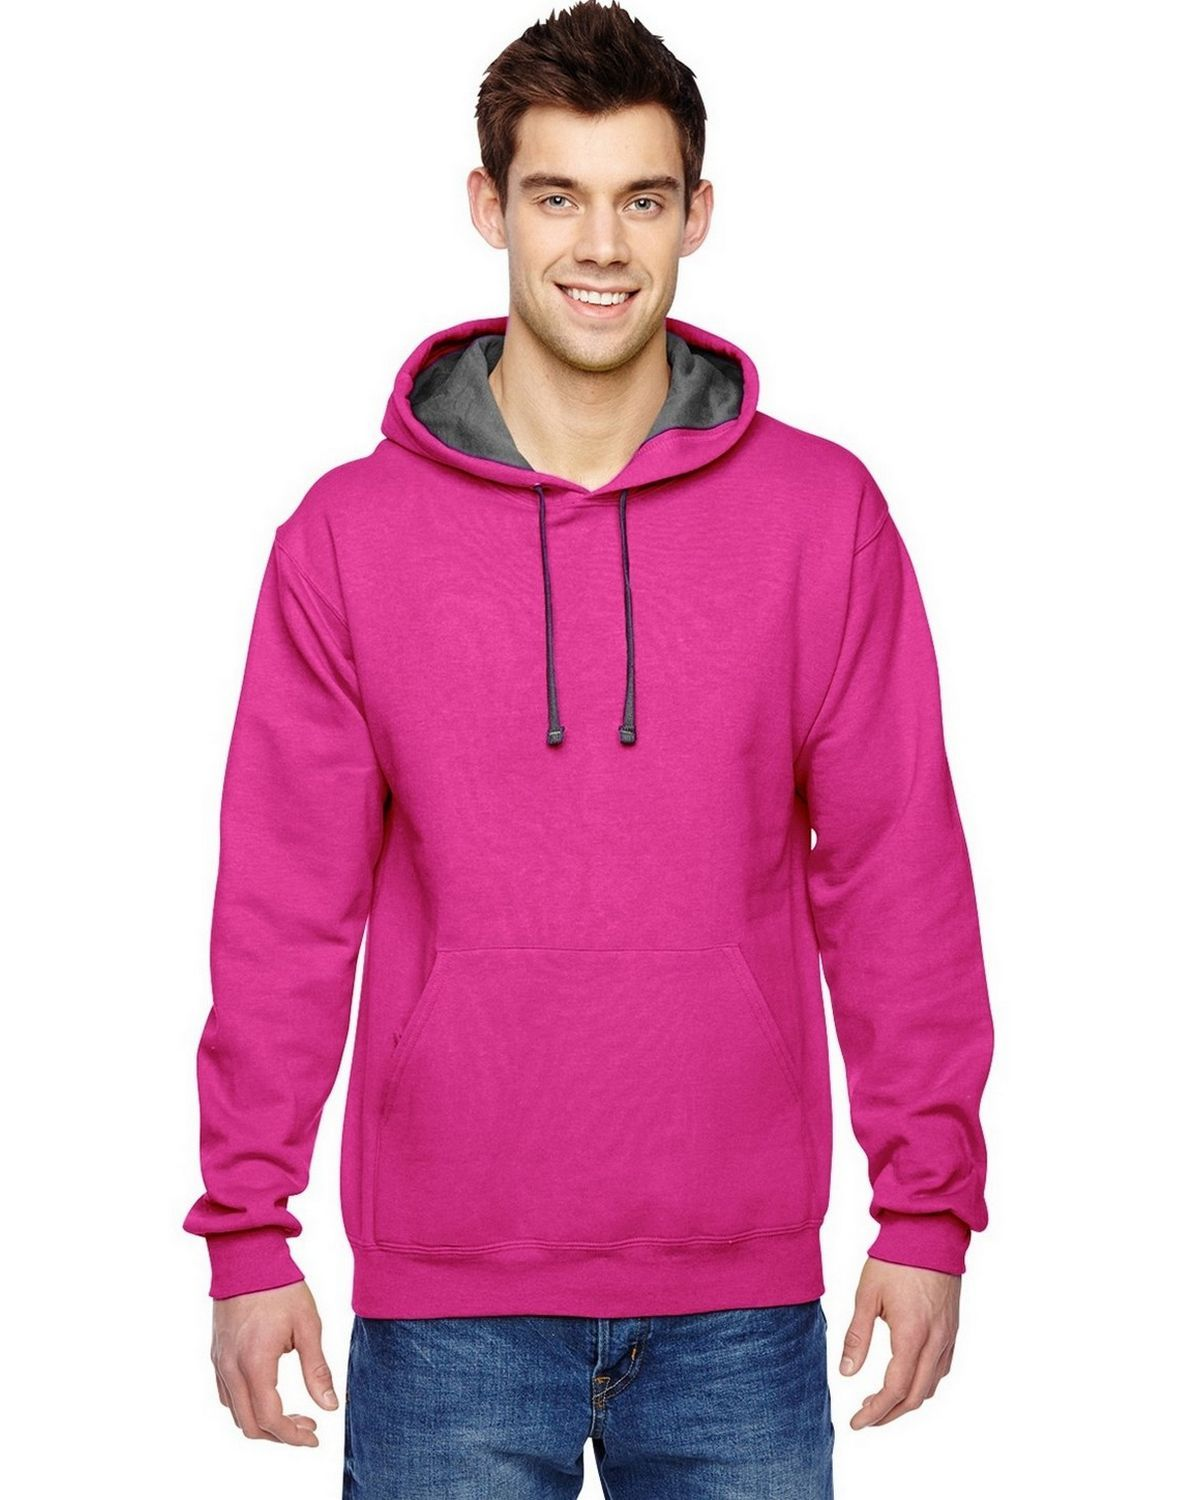 Fruit of the Loom SF76R Sofspun Hooded Sweatshirt